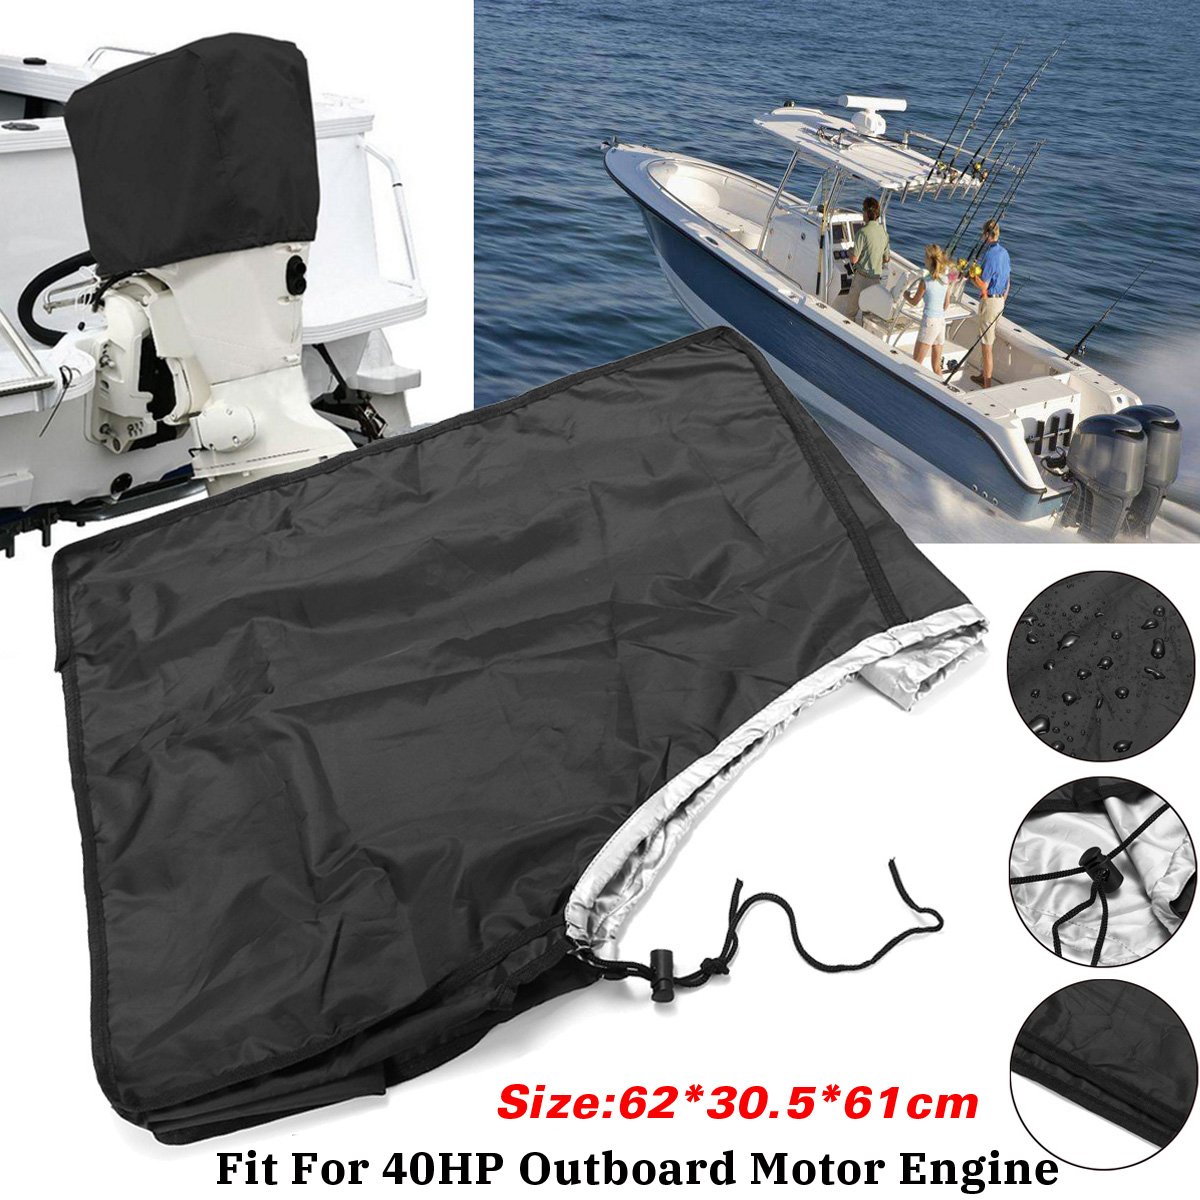 Vehicle Parts & Accessories Waterproof Outboard Motor 10-45 HP Boat Engine Protector Cover Boats Parts & Accessories